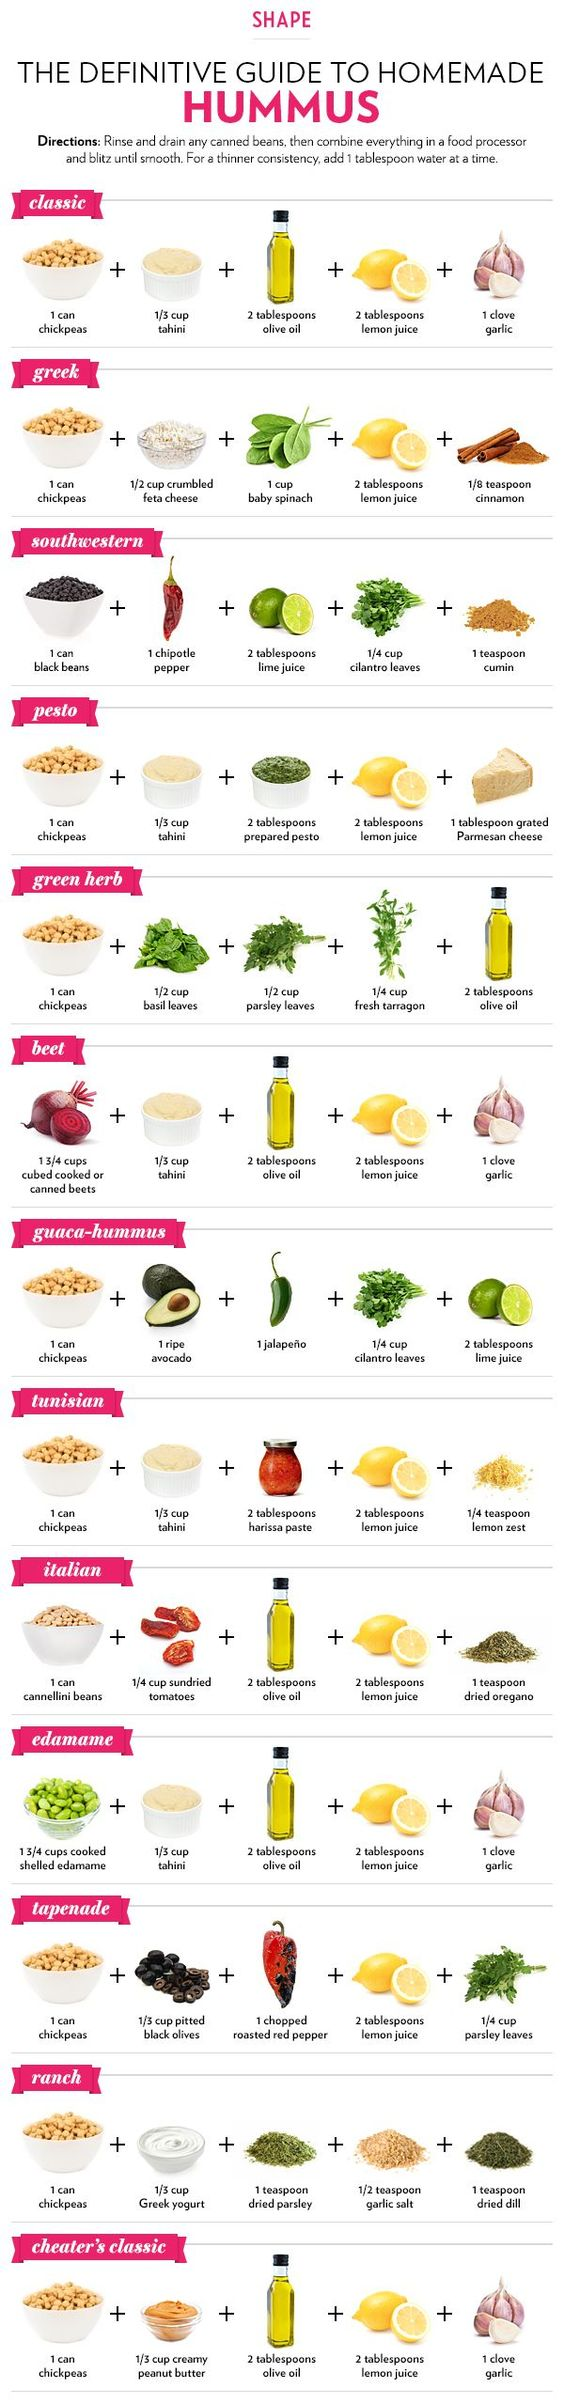 """I have an aversion to using the word """"hummus"""" to describe anything that isn't hummus. However, here are some fun hummus recipes, along with other dips!"""